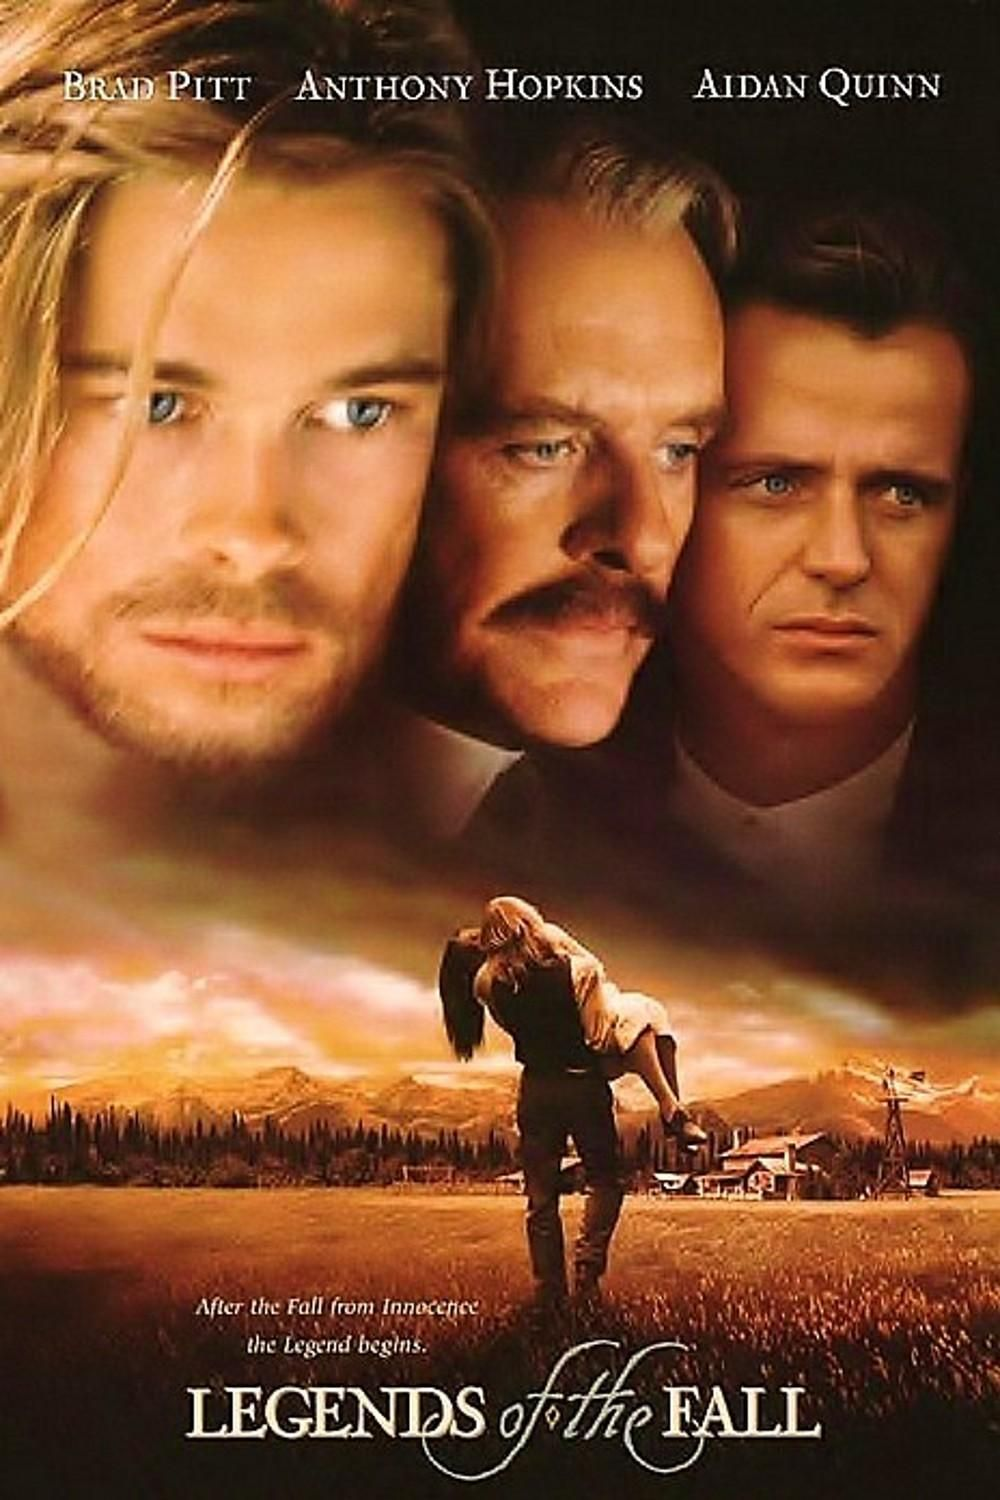 ...from 1994 Legends of the Fall with Brad Pitt, Aidan ...